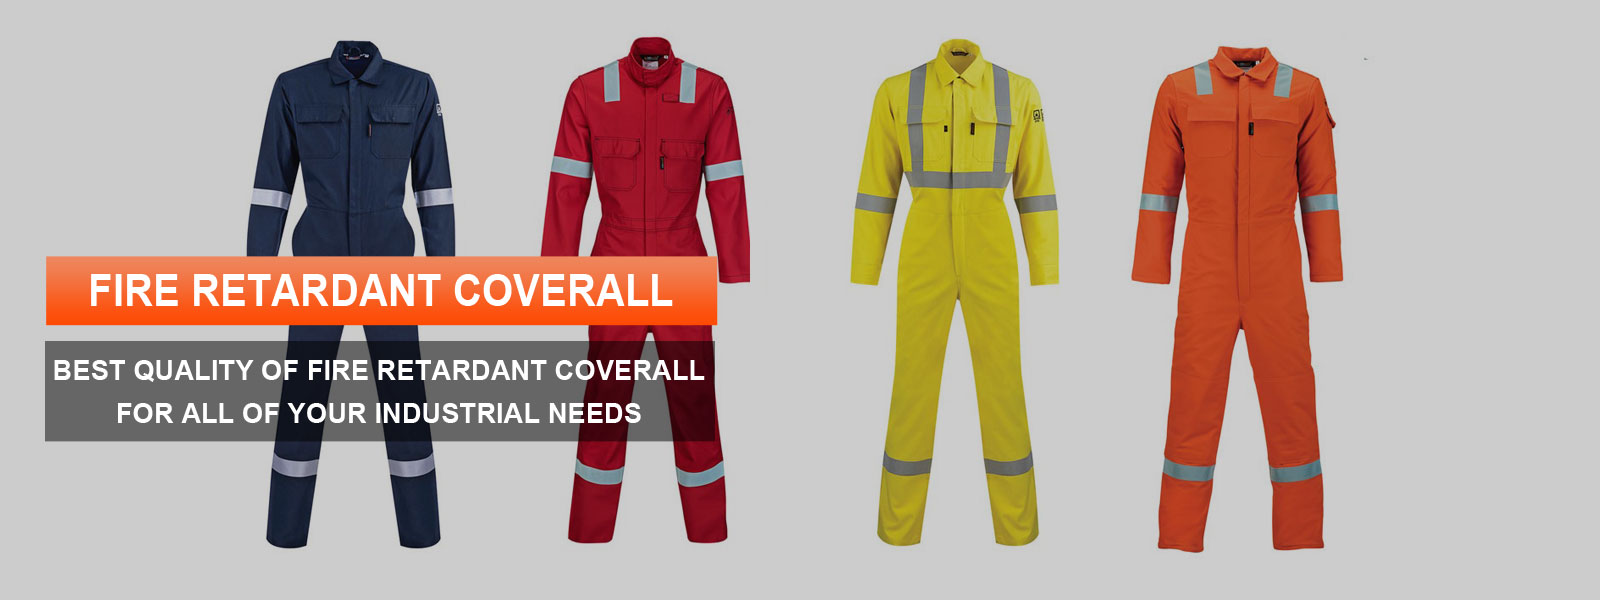 Fire Retardant Coverall Manufacturers in Portugal